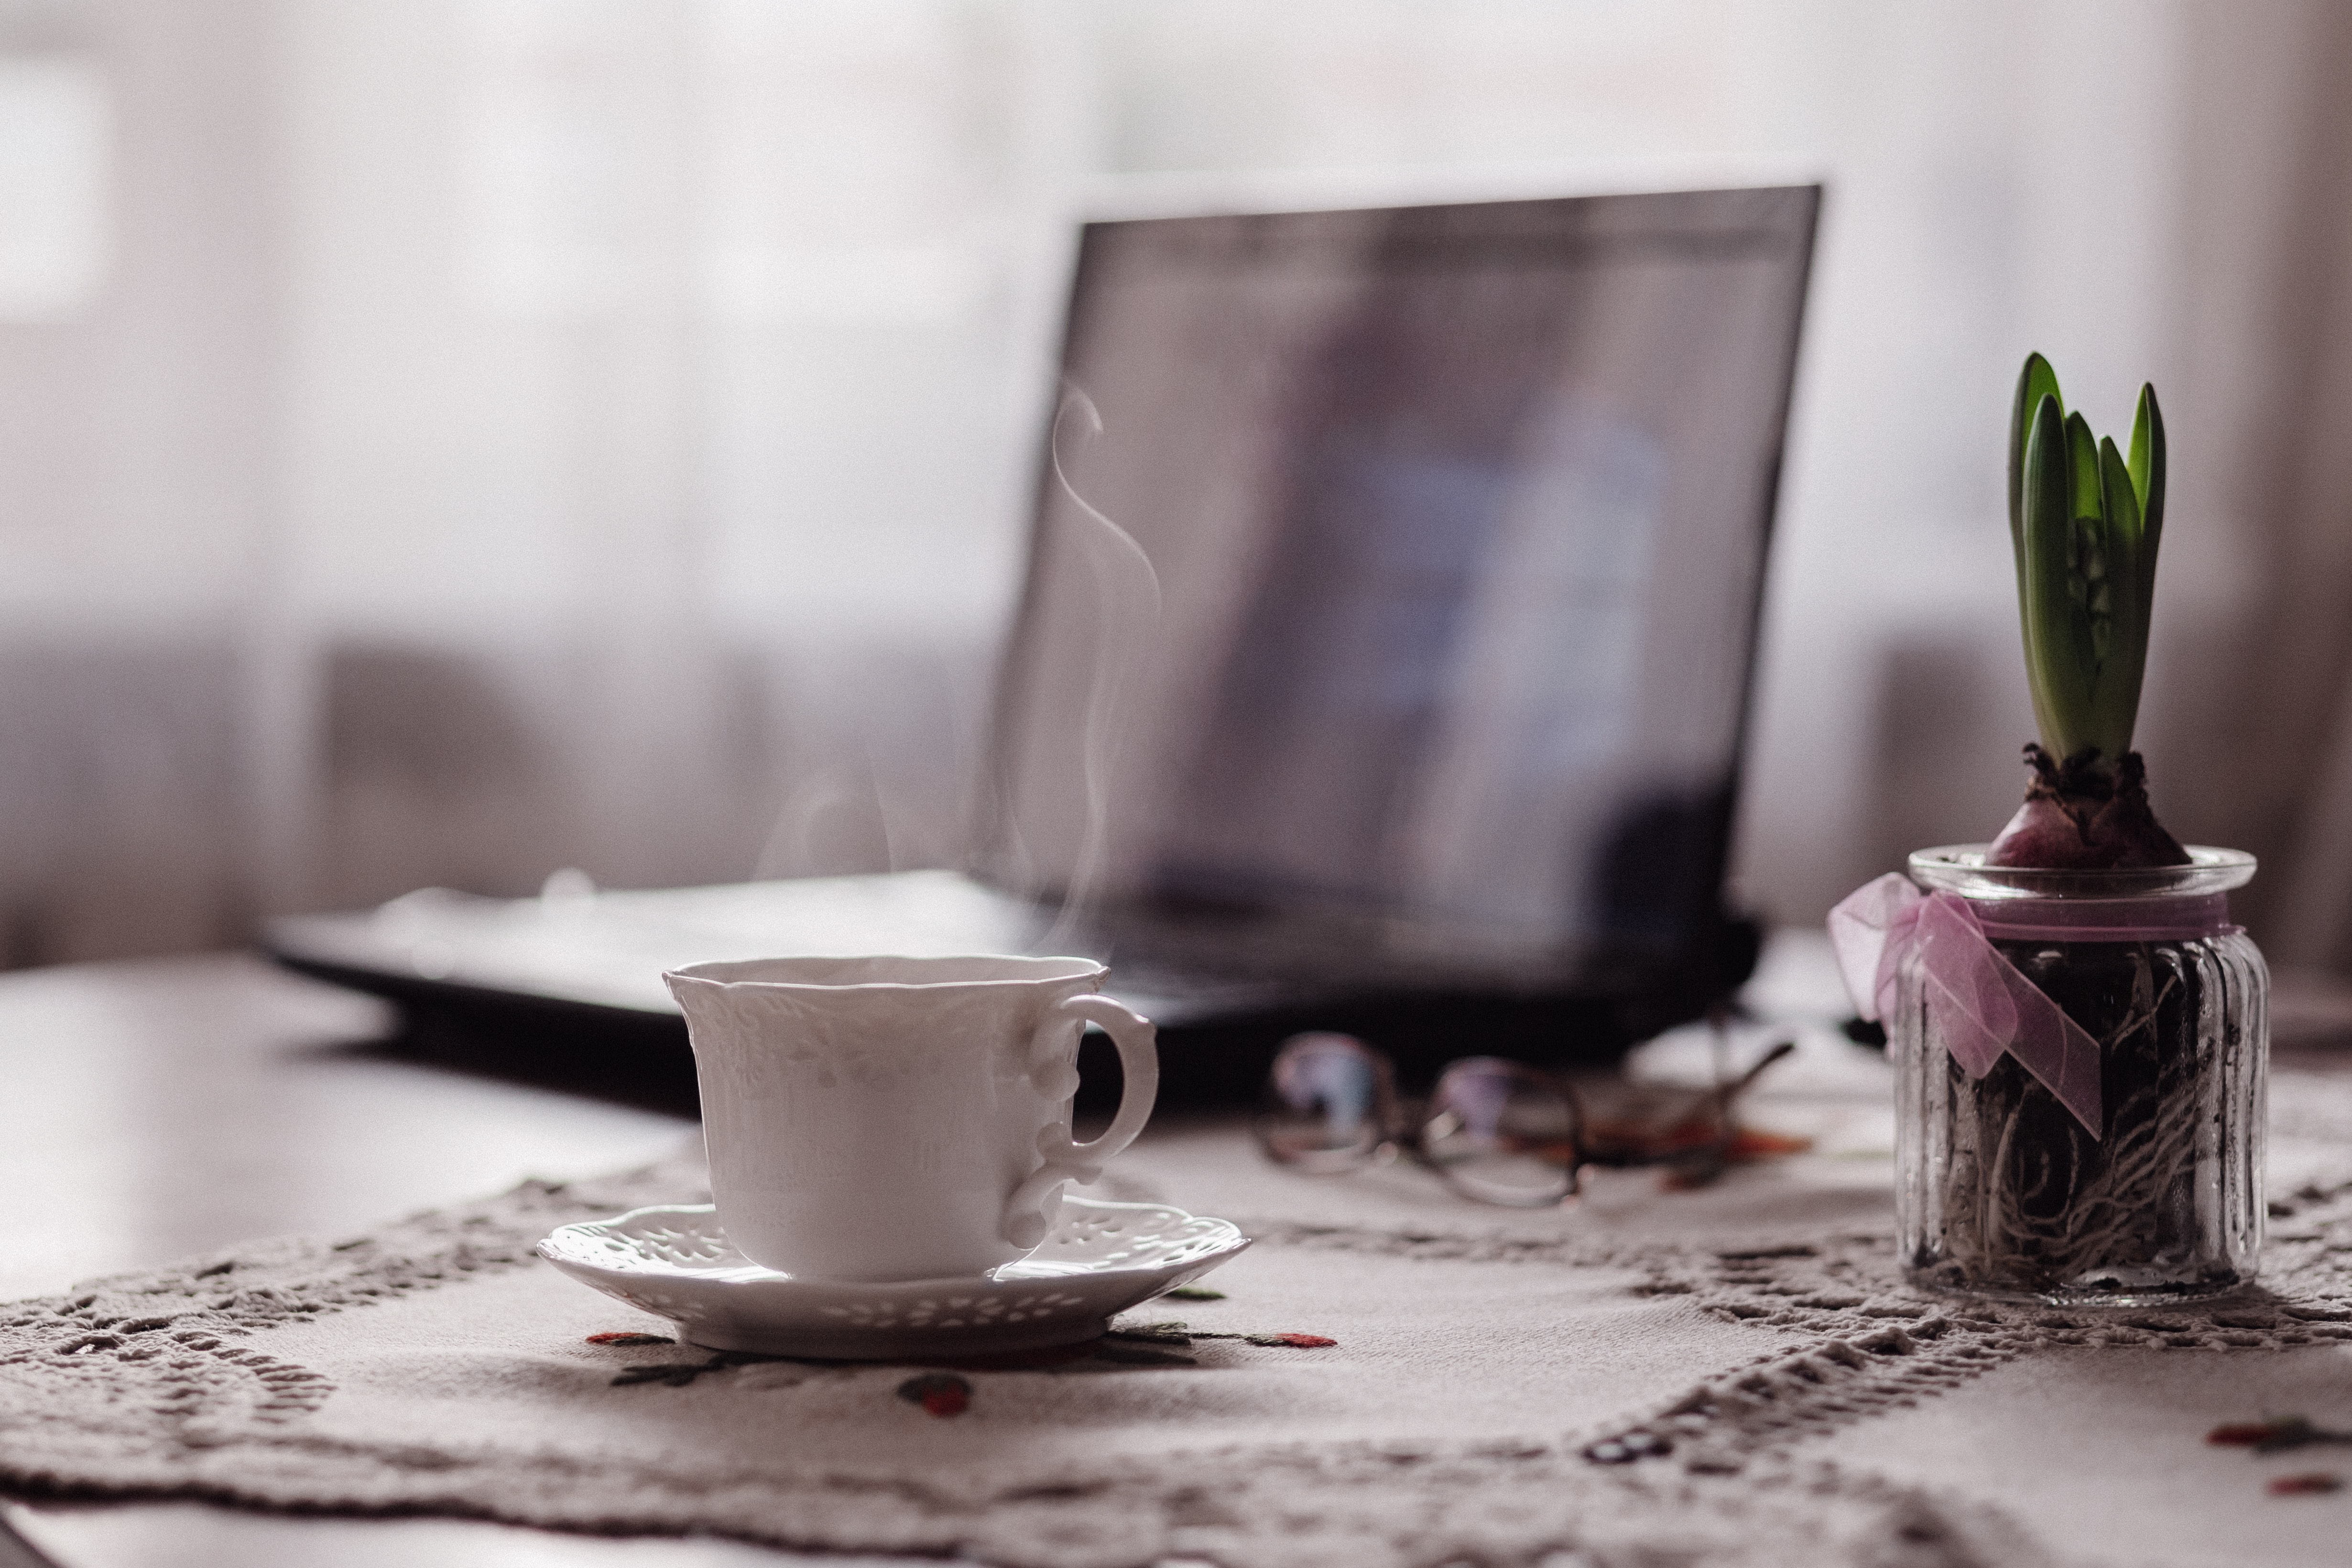 A cup of hot coffee next to a laptop and a potted flower bulb